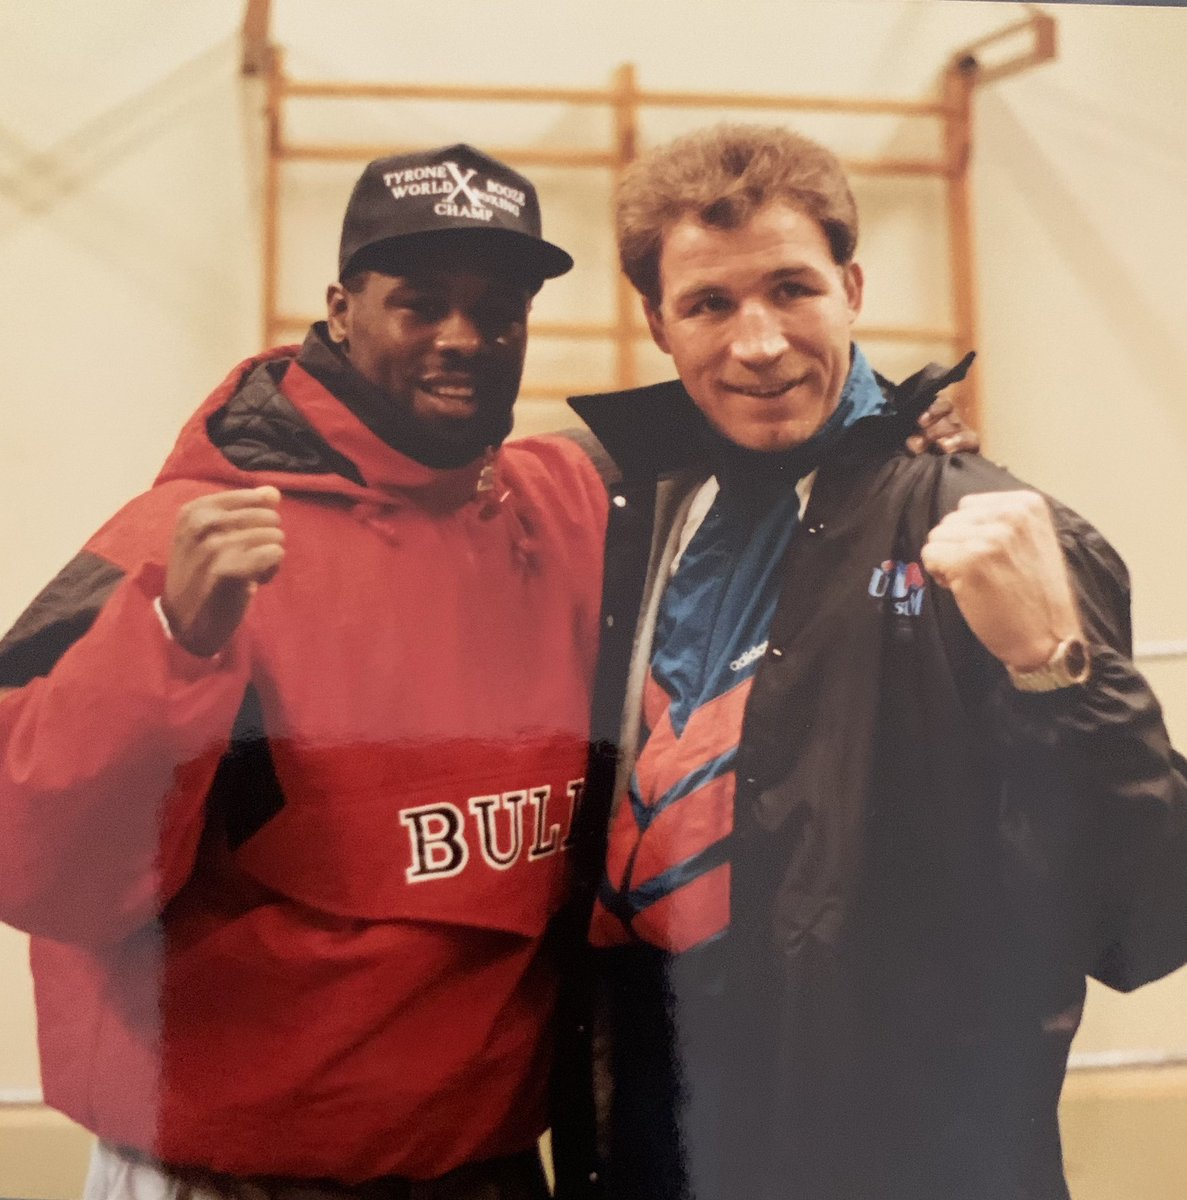 First person to name these two former boxing world champion's will win a @apemanstrong gift https://t.co/e13UaEfi83